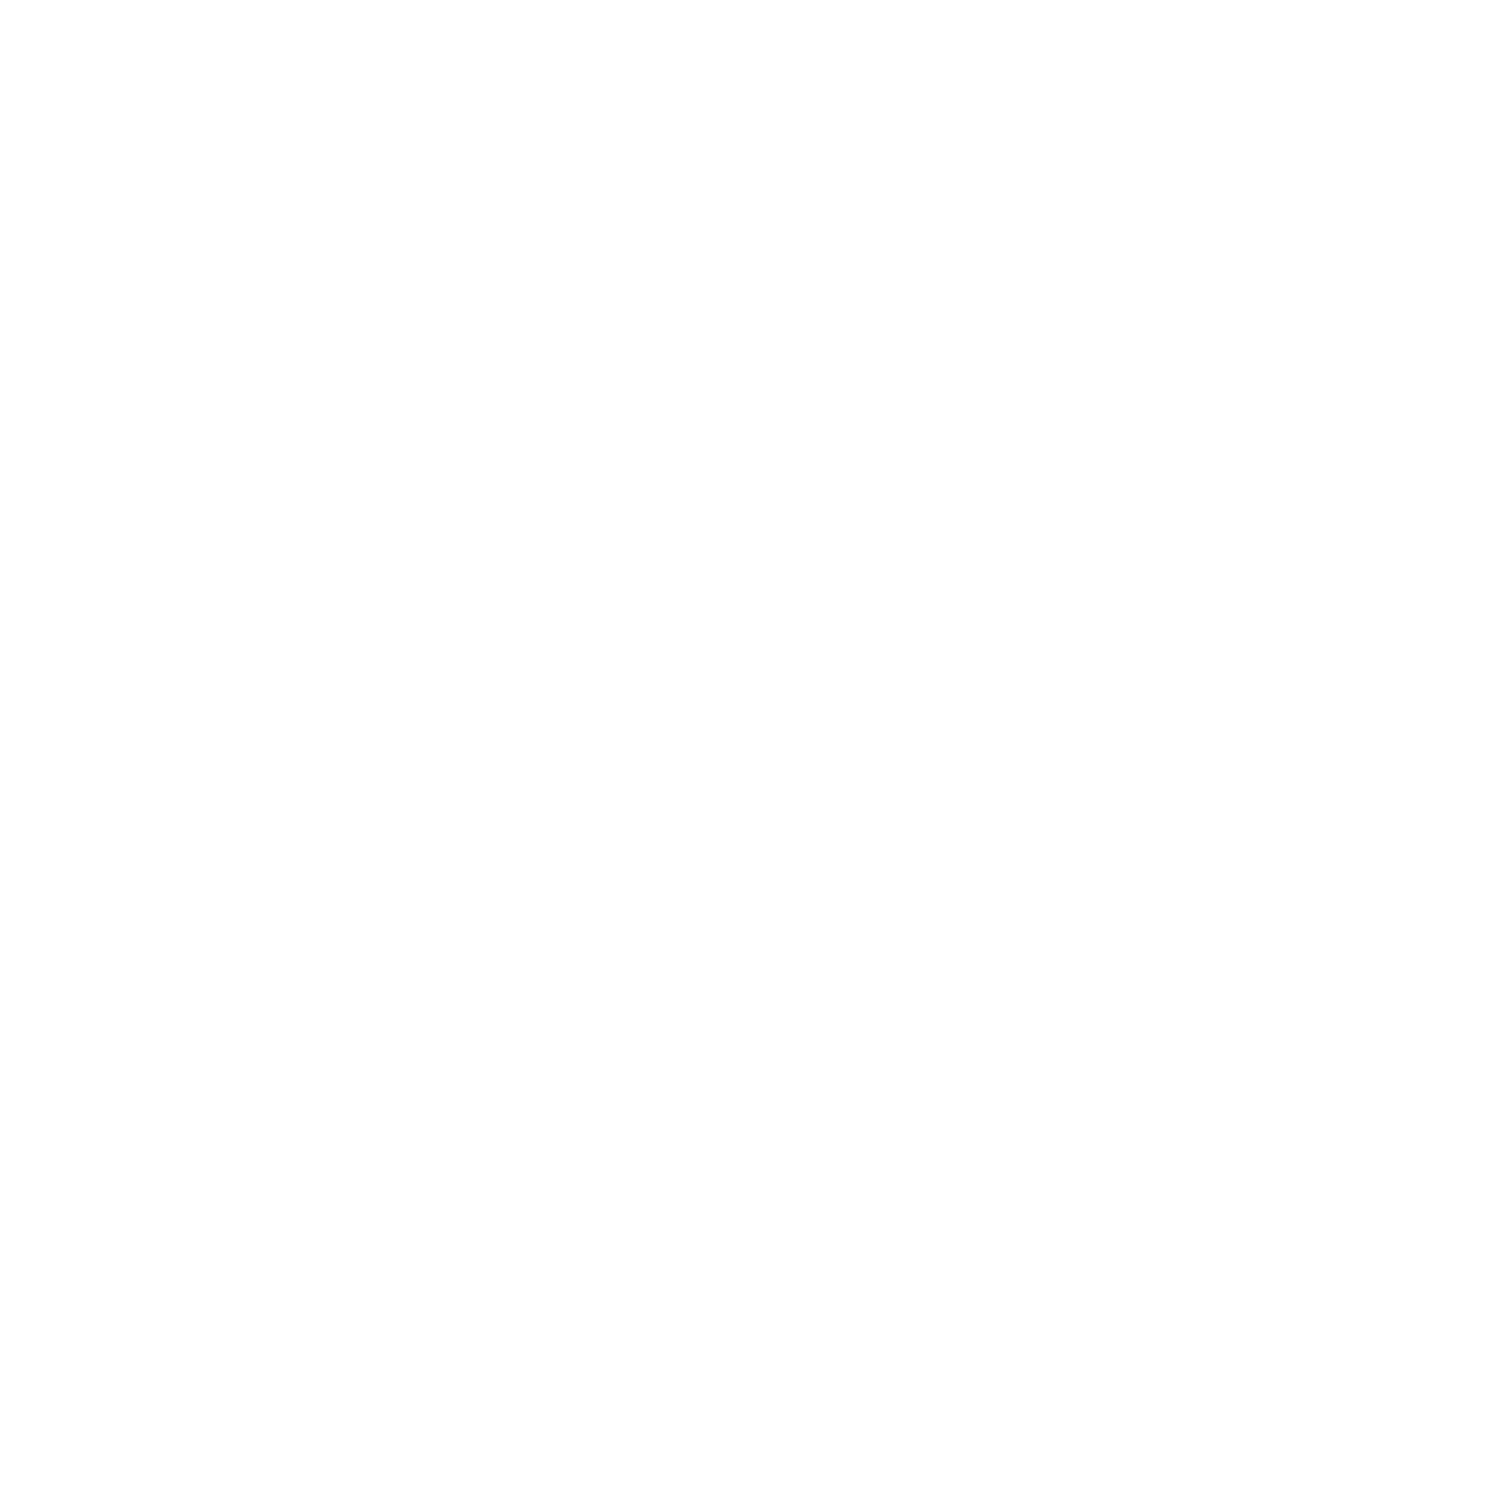 For Always Photography